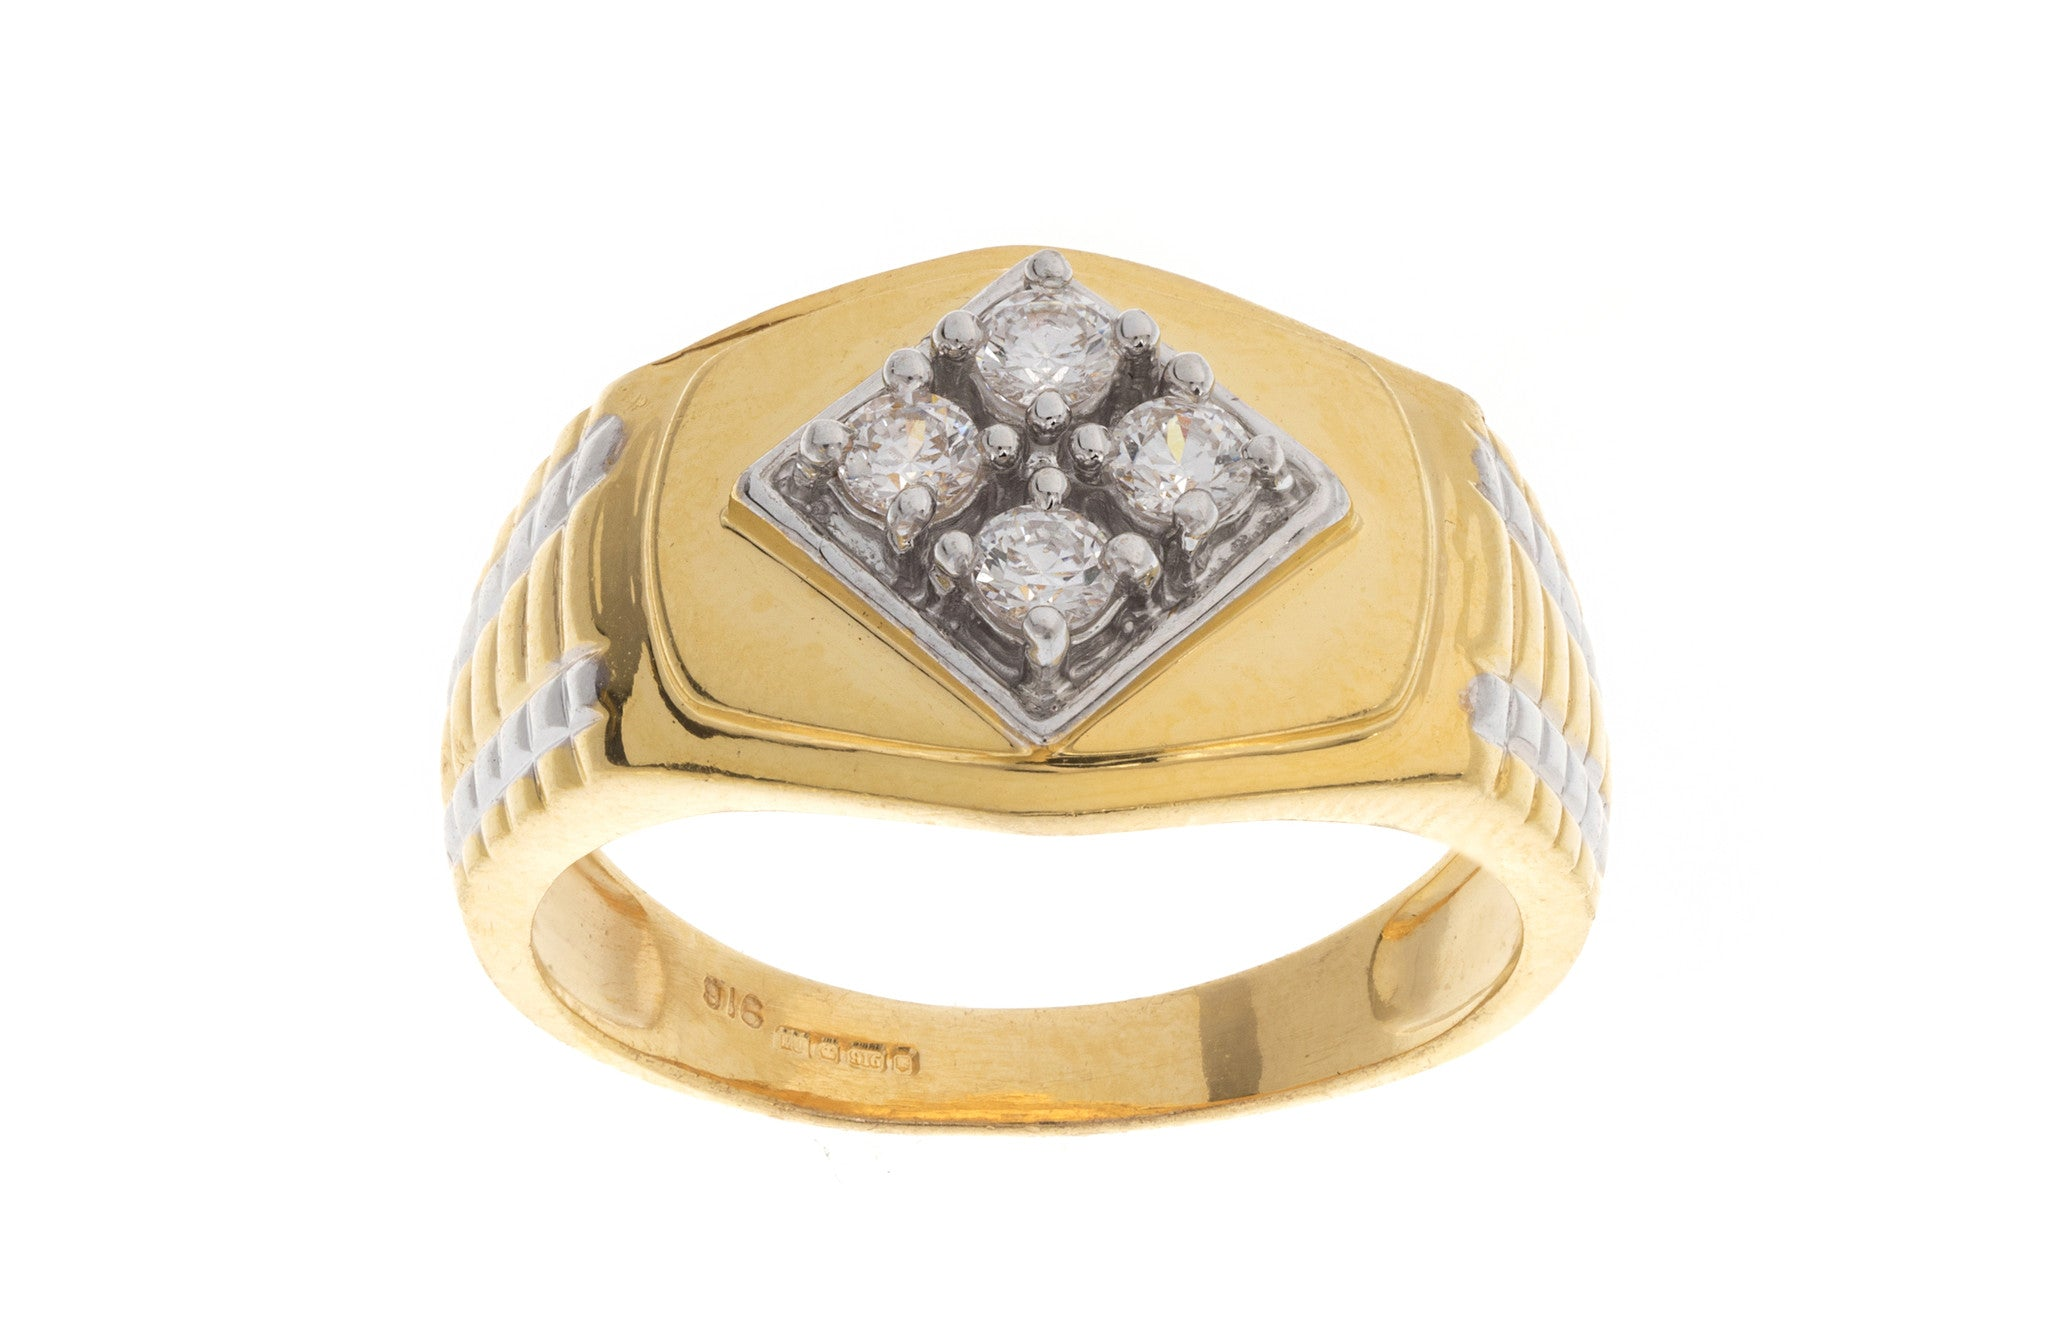 22ct Yellow Gold Cubic Zirconia Men's Ring, Minar Jewellers - 1